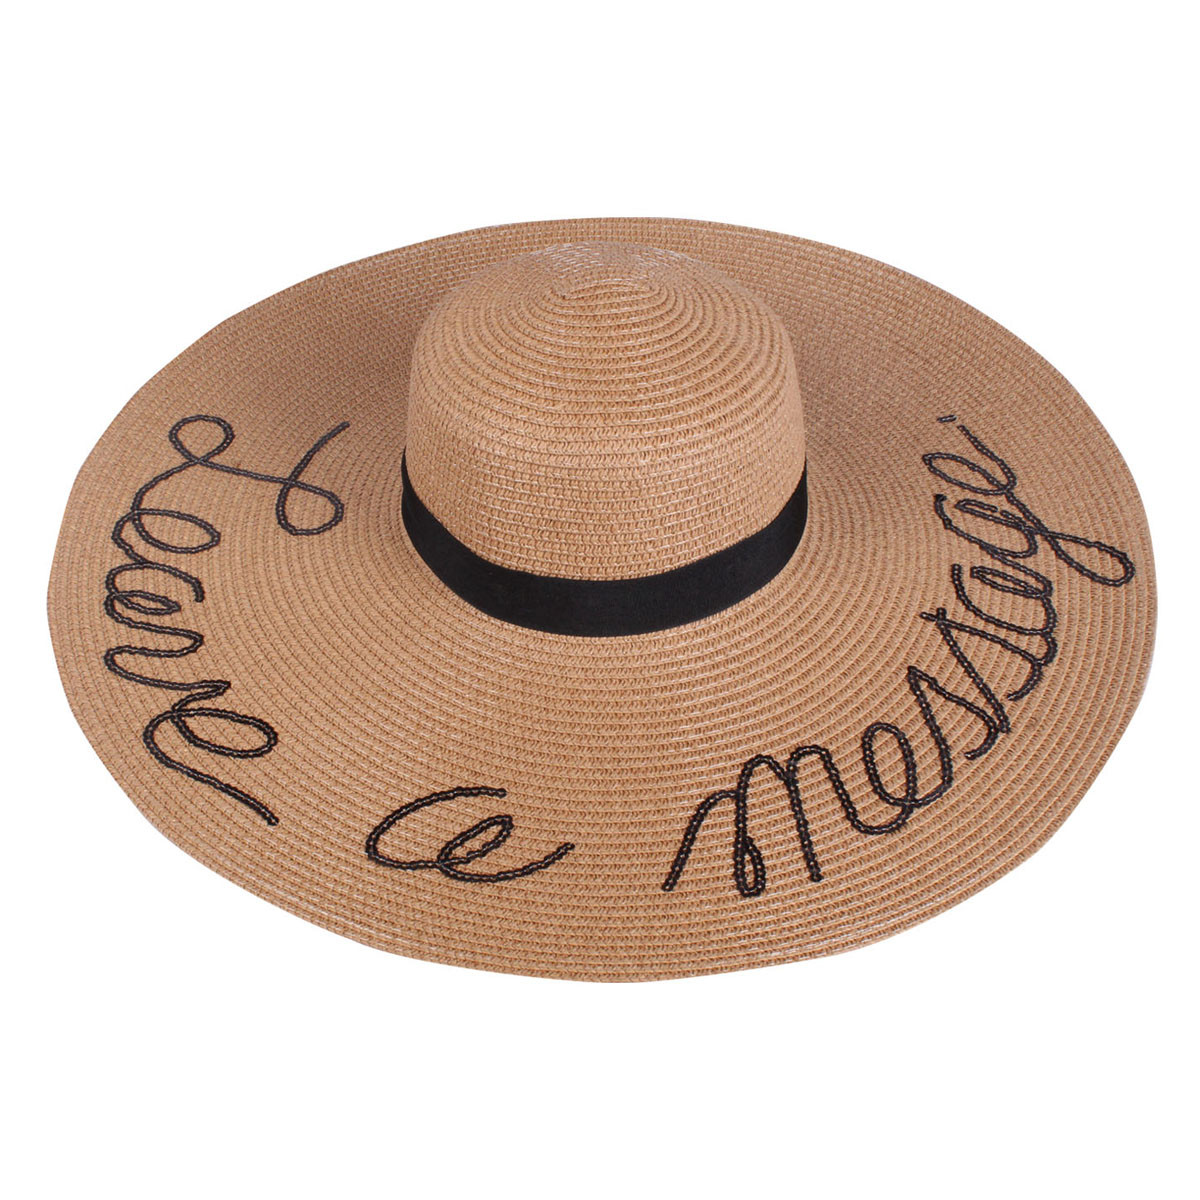 ddedf737 Sequined Large Floppy Straw Hat Leave a message Khaki ...